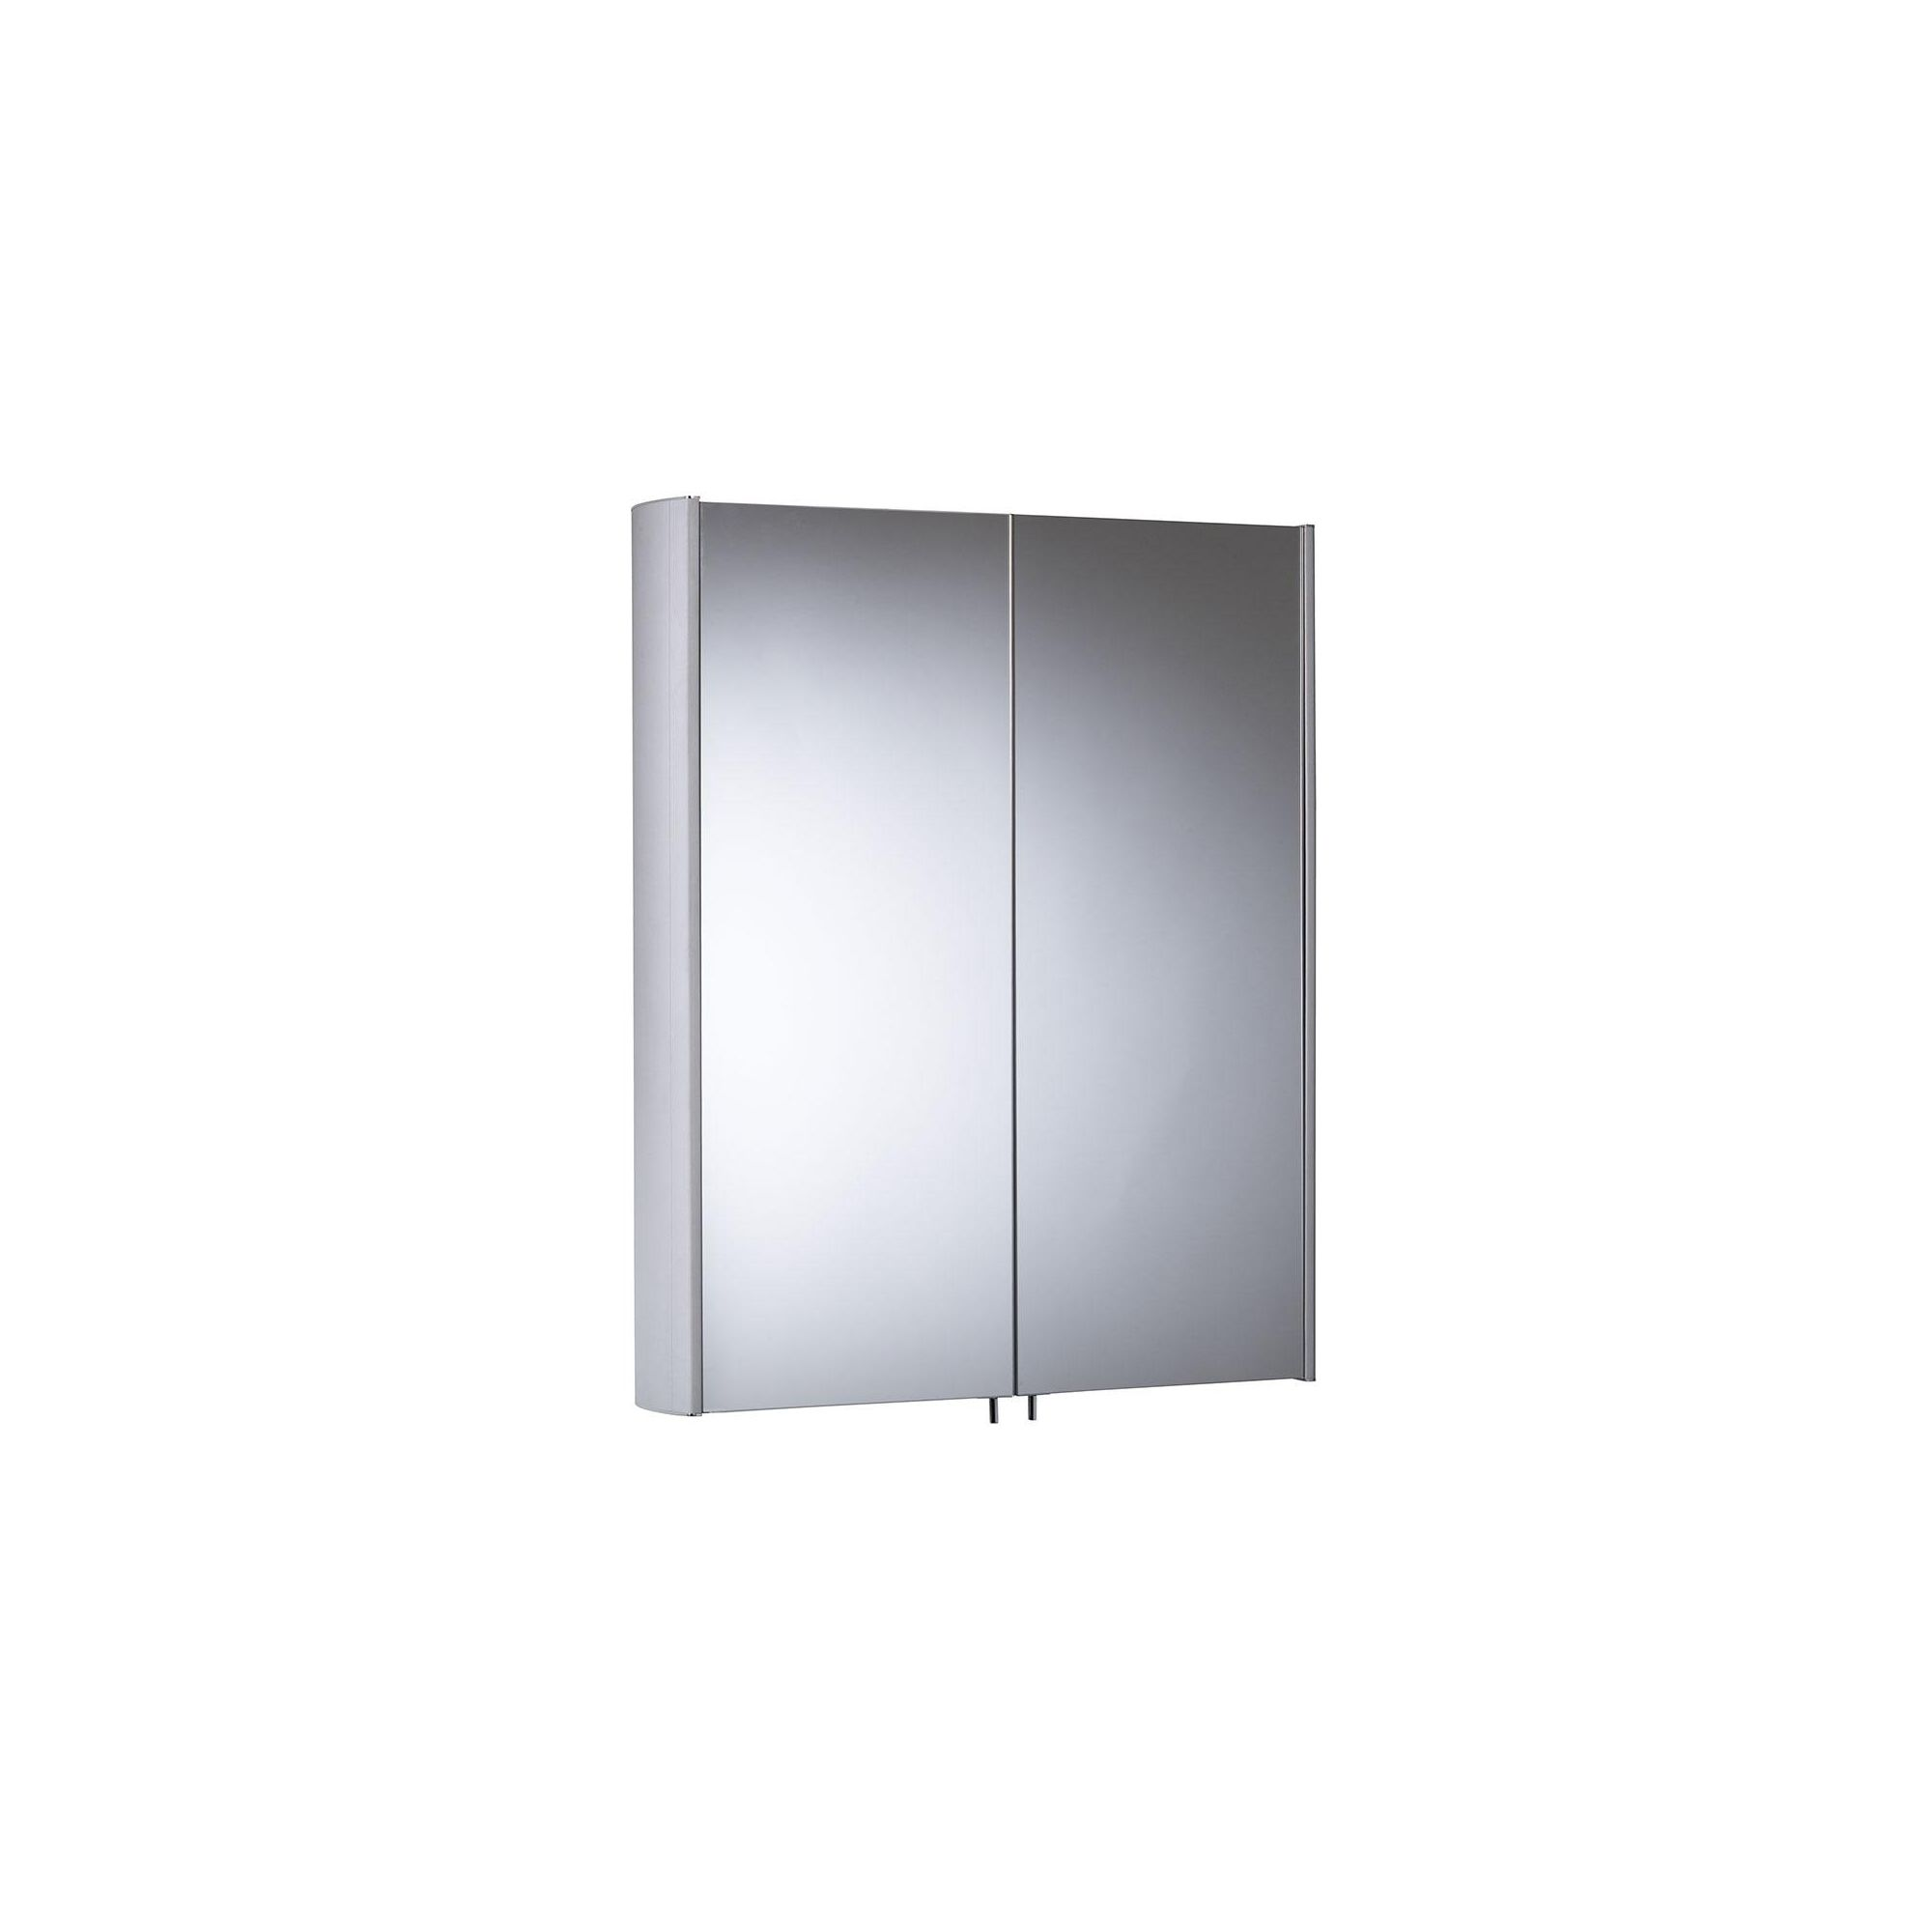 Tavistock Move Aluminium Double Door Cabinet without Electrics - 580mm Wide